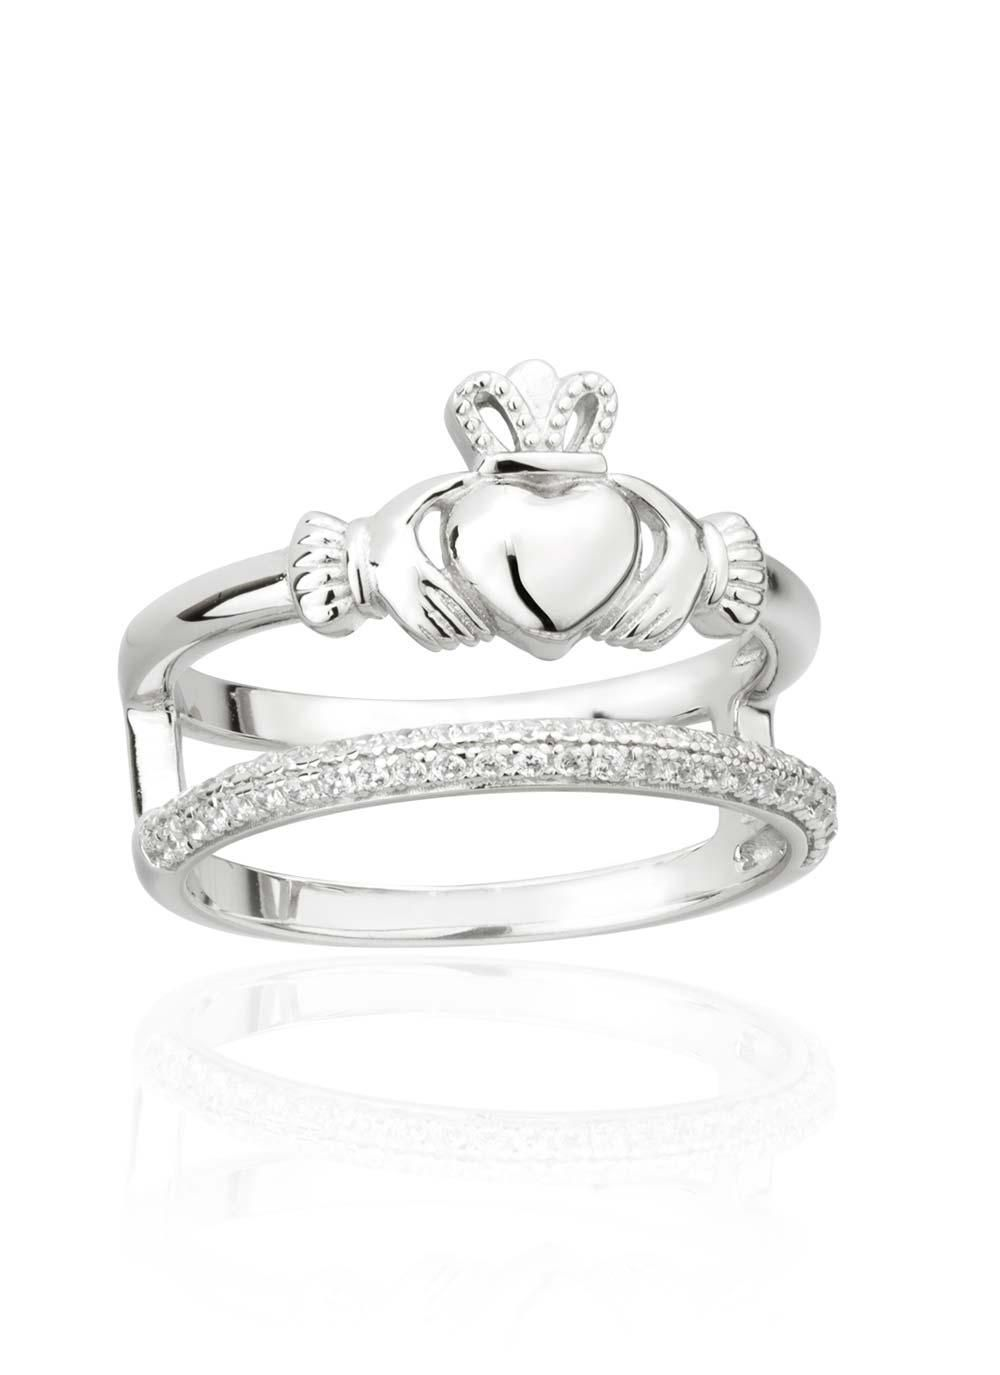 Double Band Claddagh Ring With Cubic Zirconia This Stunning Double Band Claddagh Ring Features A Claddagh Claddagh Jewelry Celtic Wedding Rings Irish Jewelry